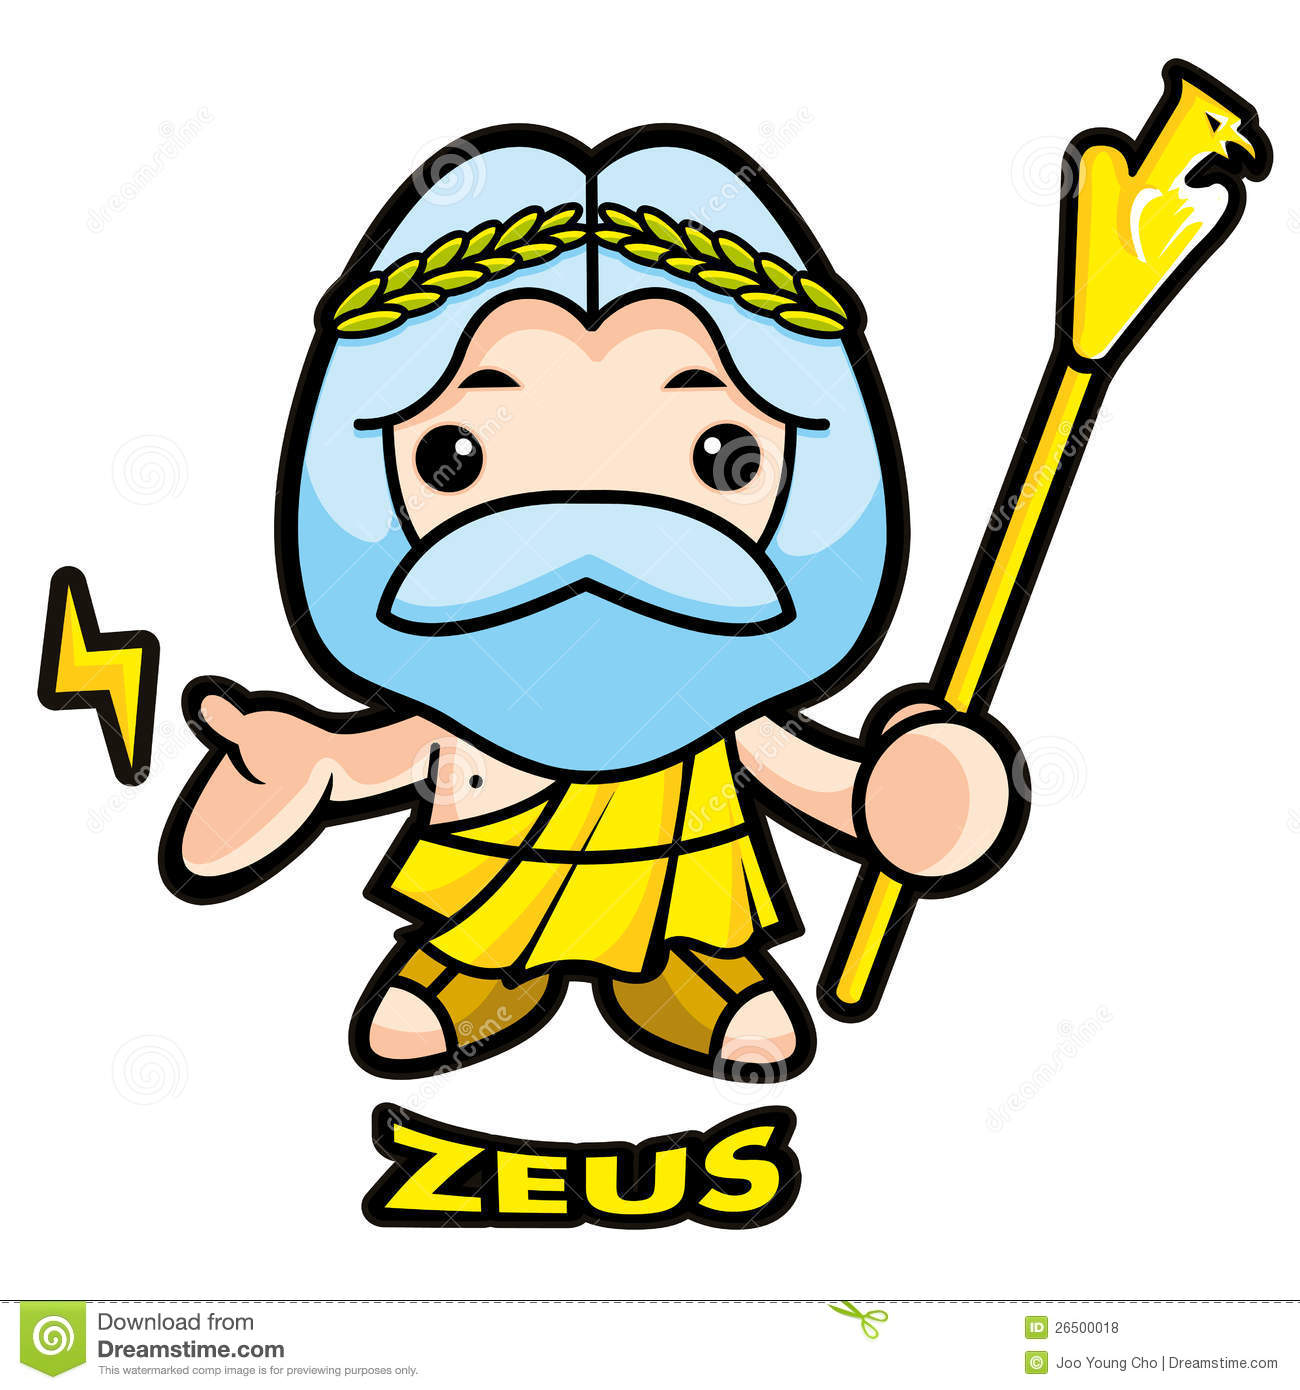 Zeus Clipart | Free download on ClipArtMag